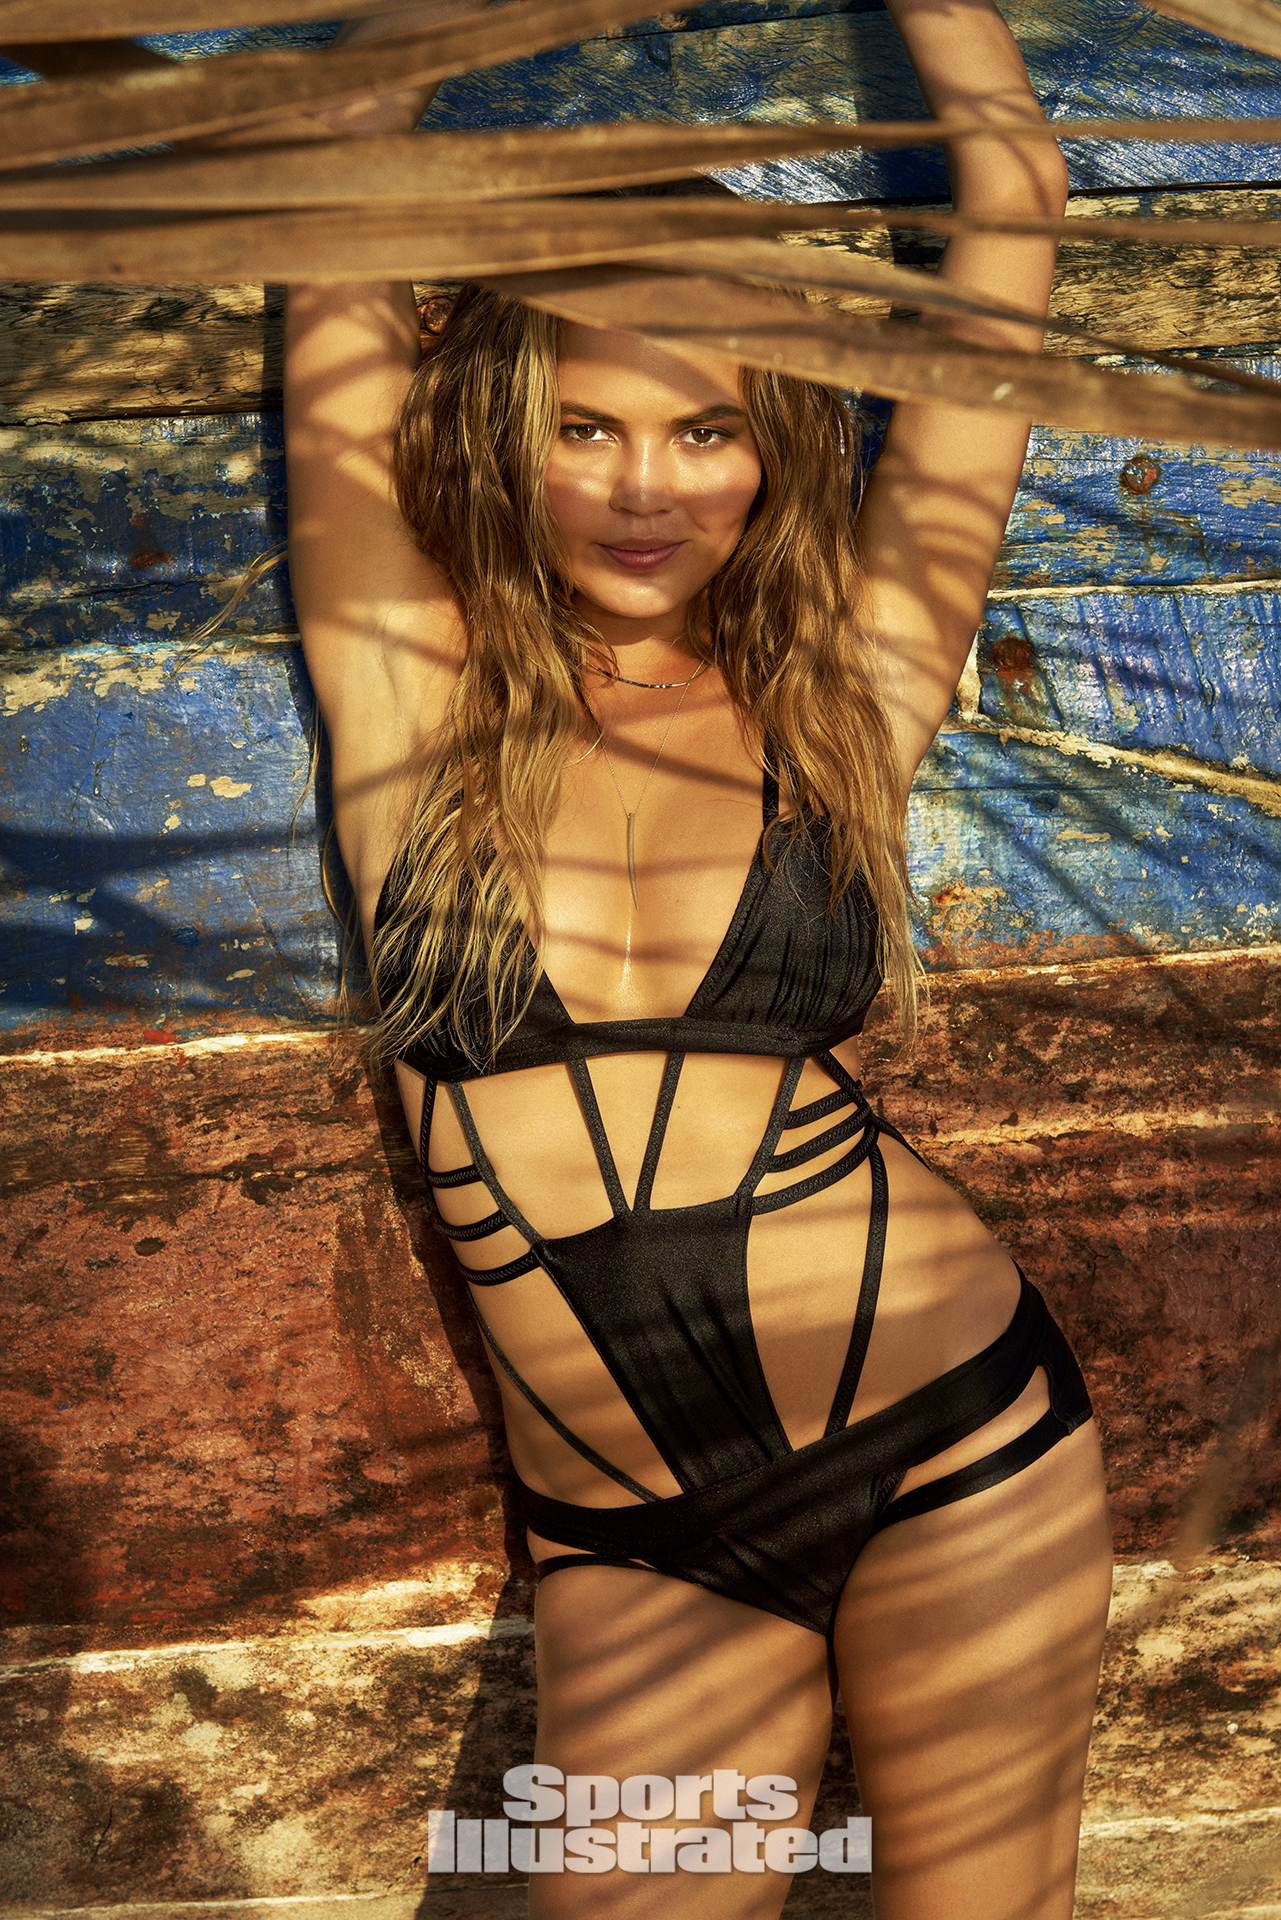 Chrissy Teigen was photographed by Ruven Afanador in Zanzibar. Swimsuit by Jiri Kalfar.